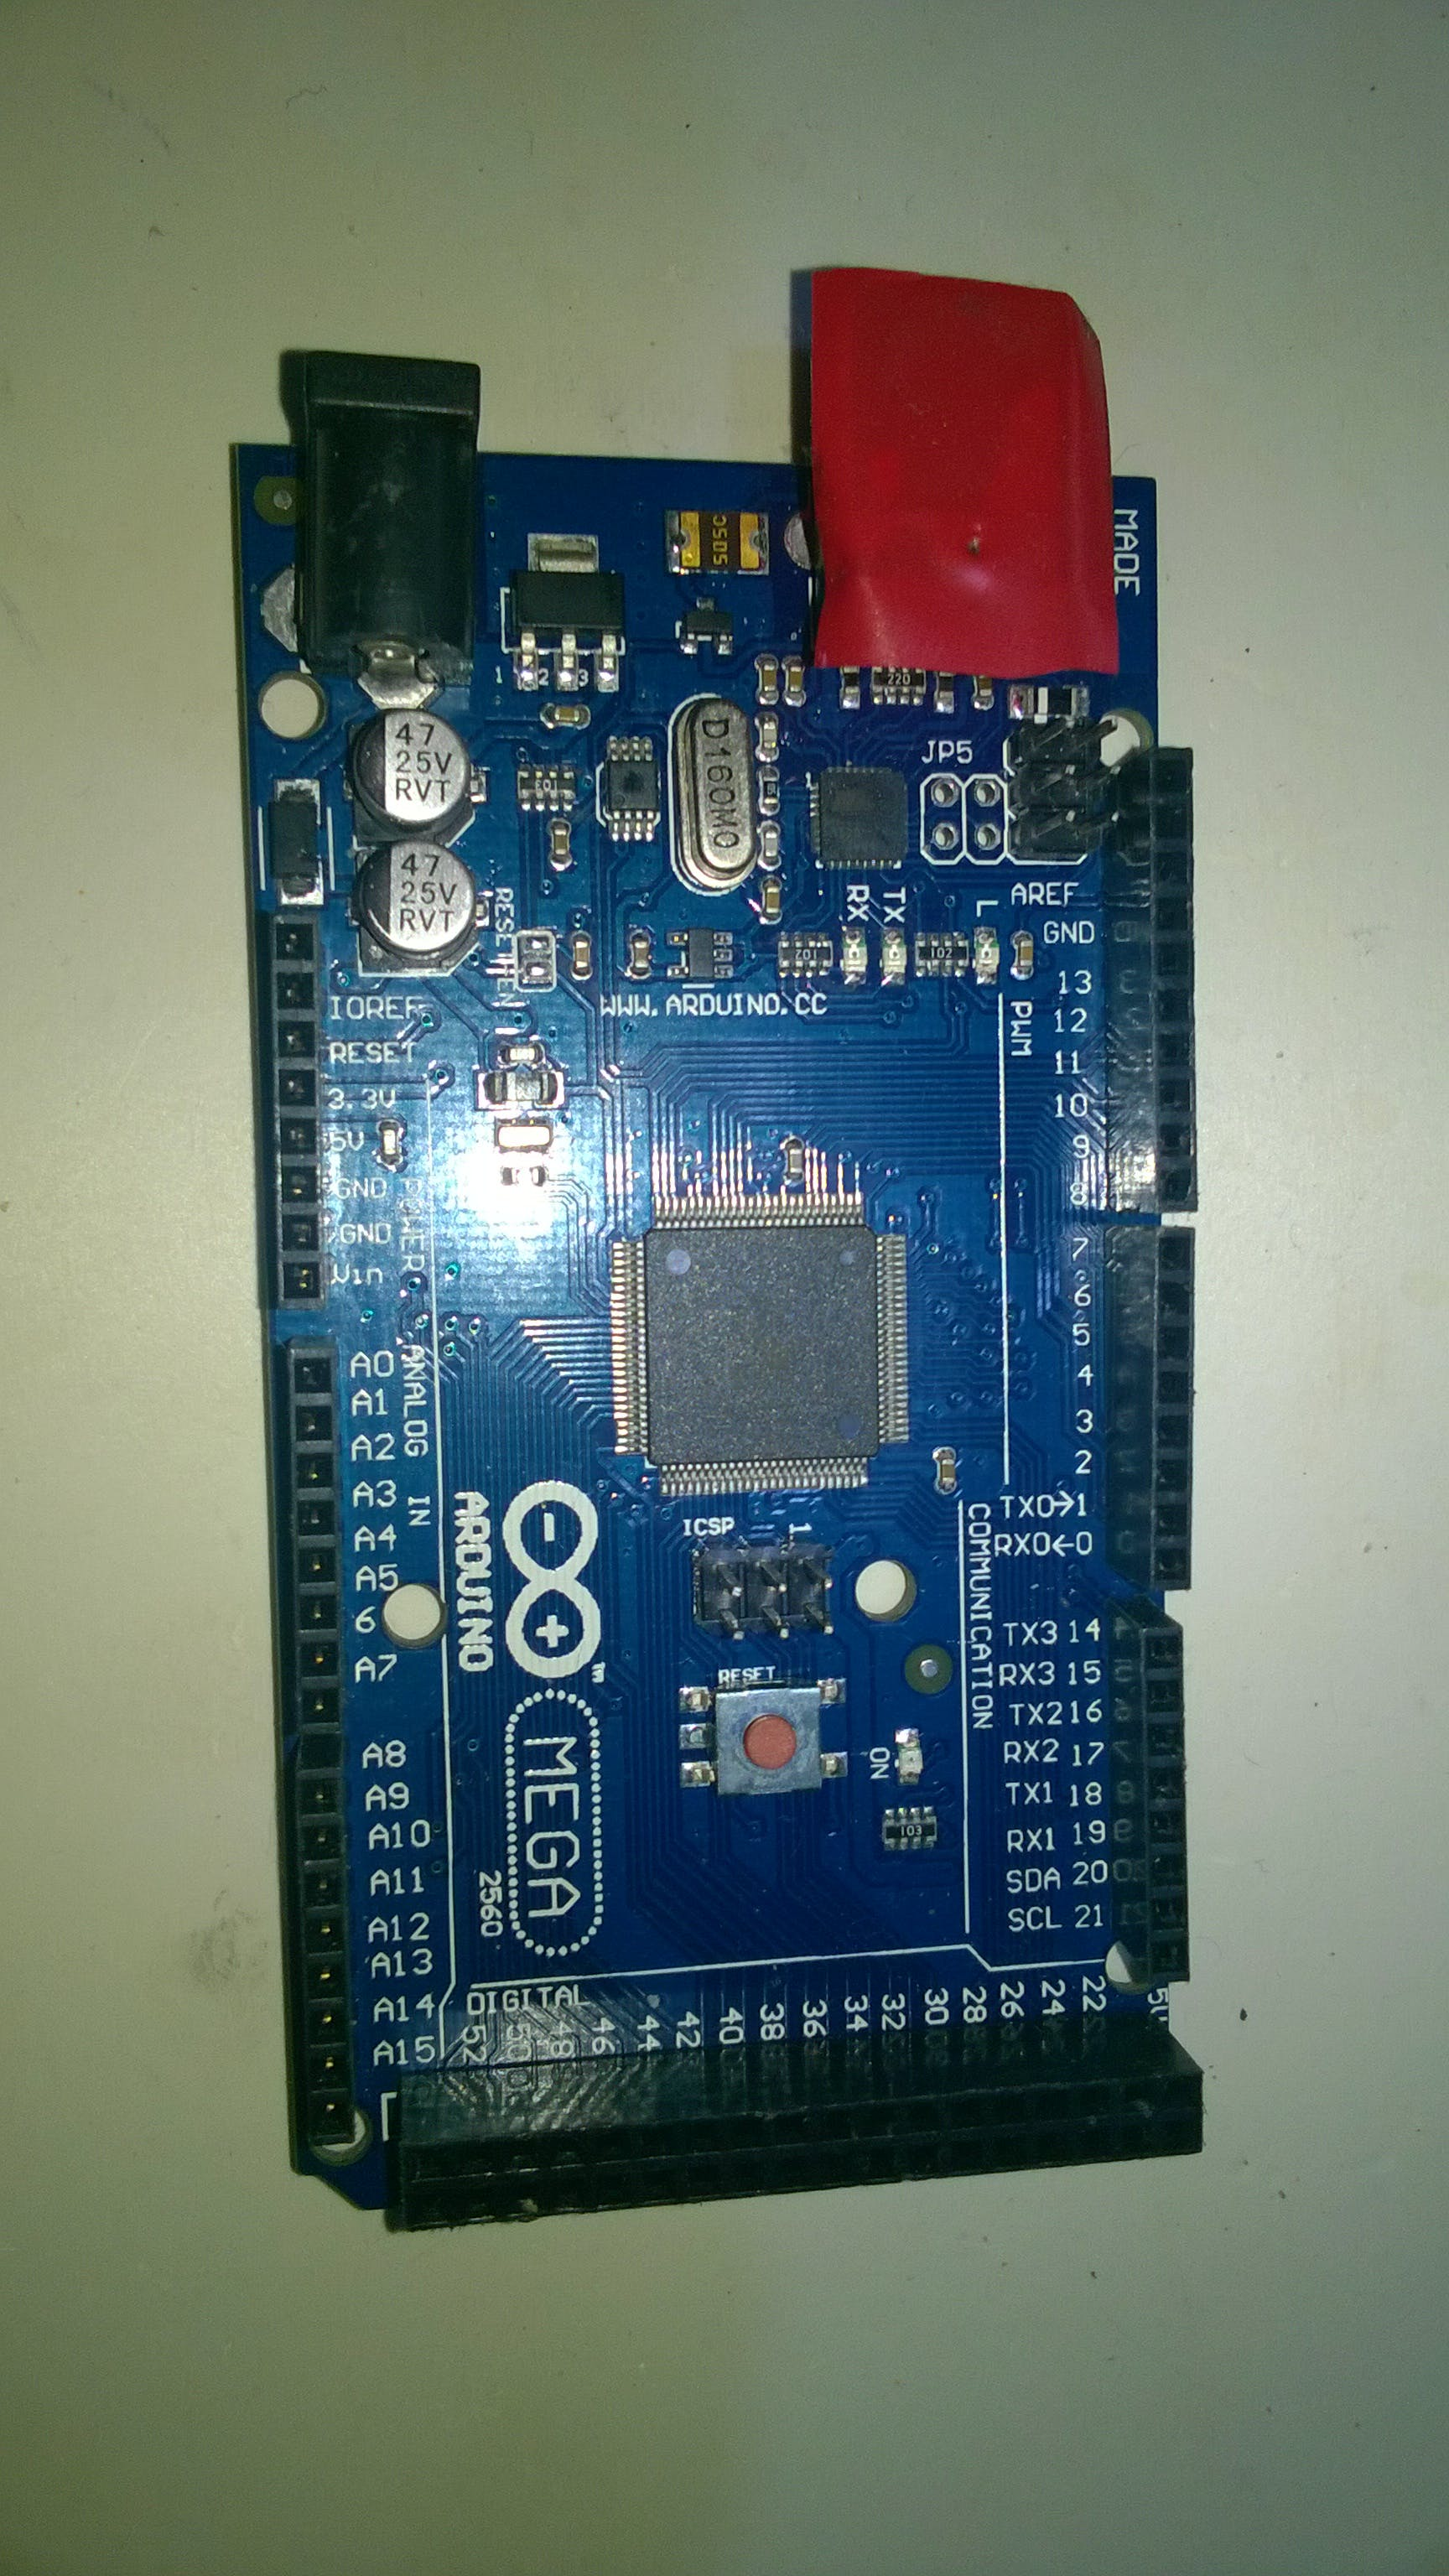 Arduino Mega 2560 (with  USB taped because shield has flaw which shorts VCC and GND of port)